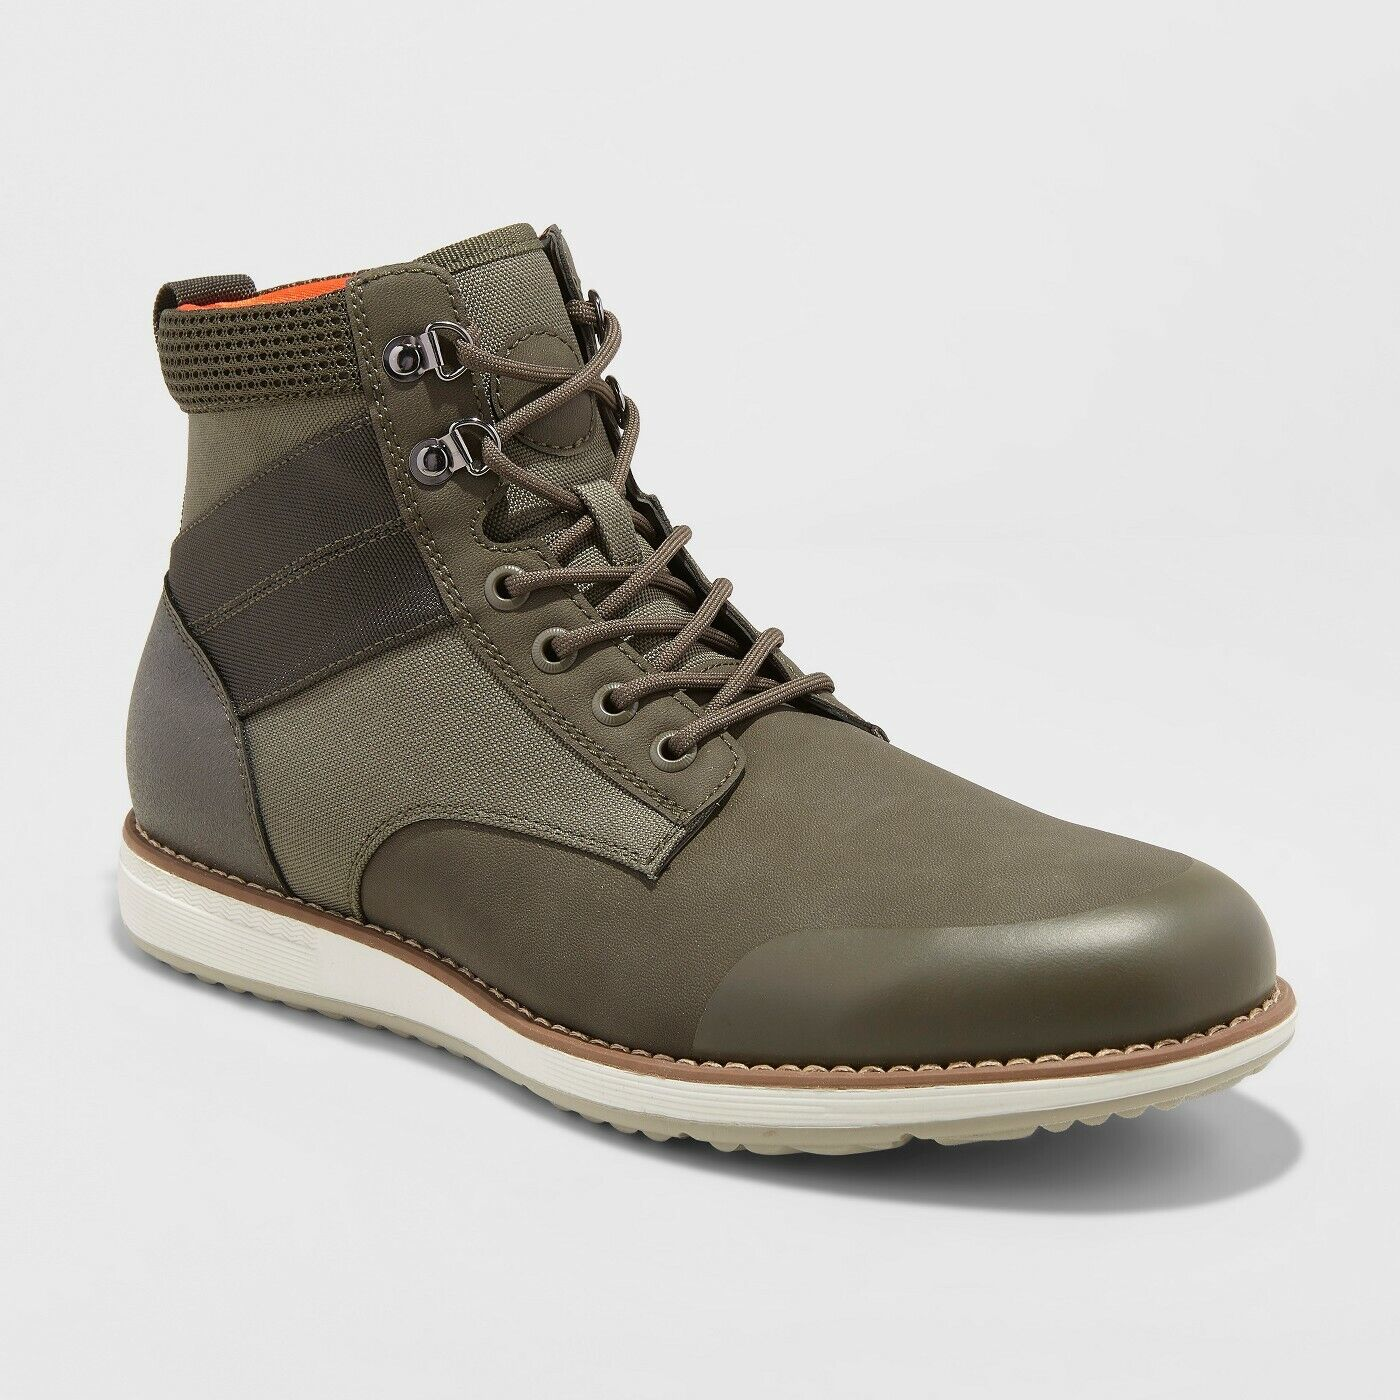 NWT Men's Phil Casual Fashion Boots - Goodfellow & Co Olive Green